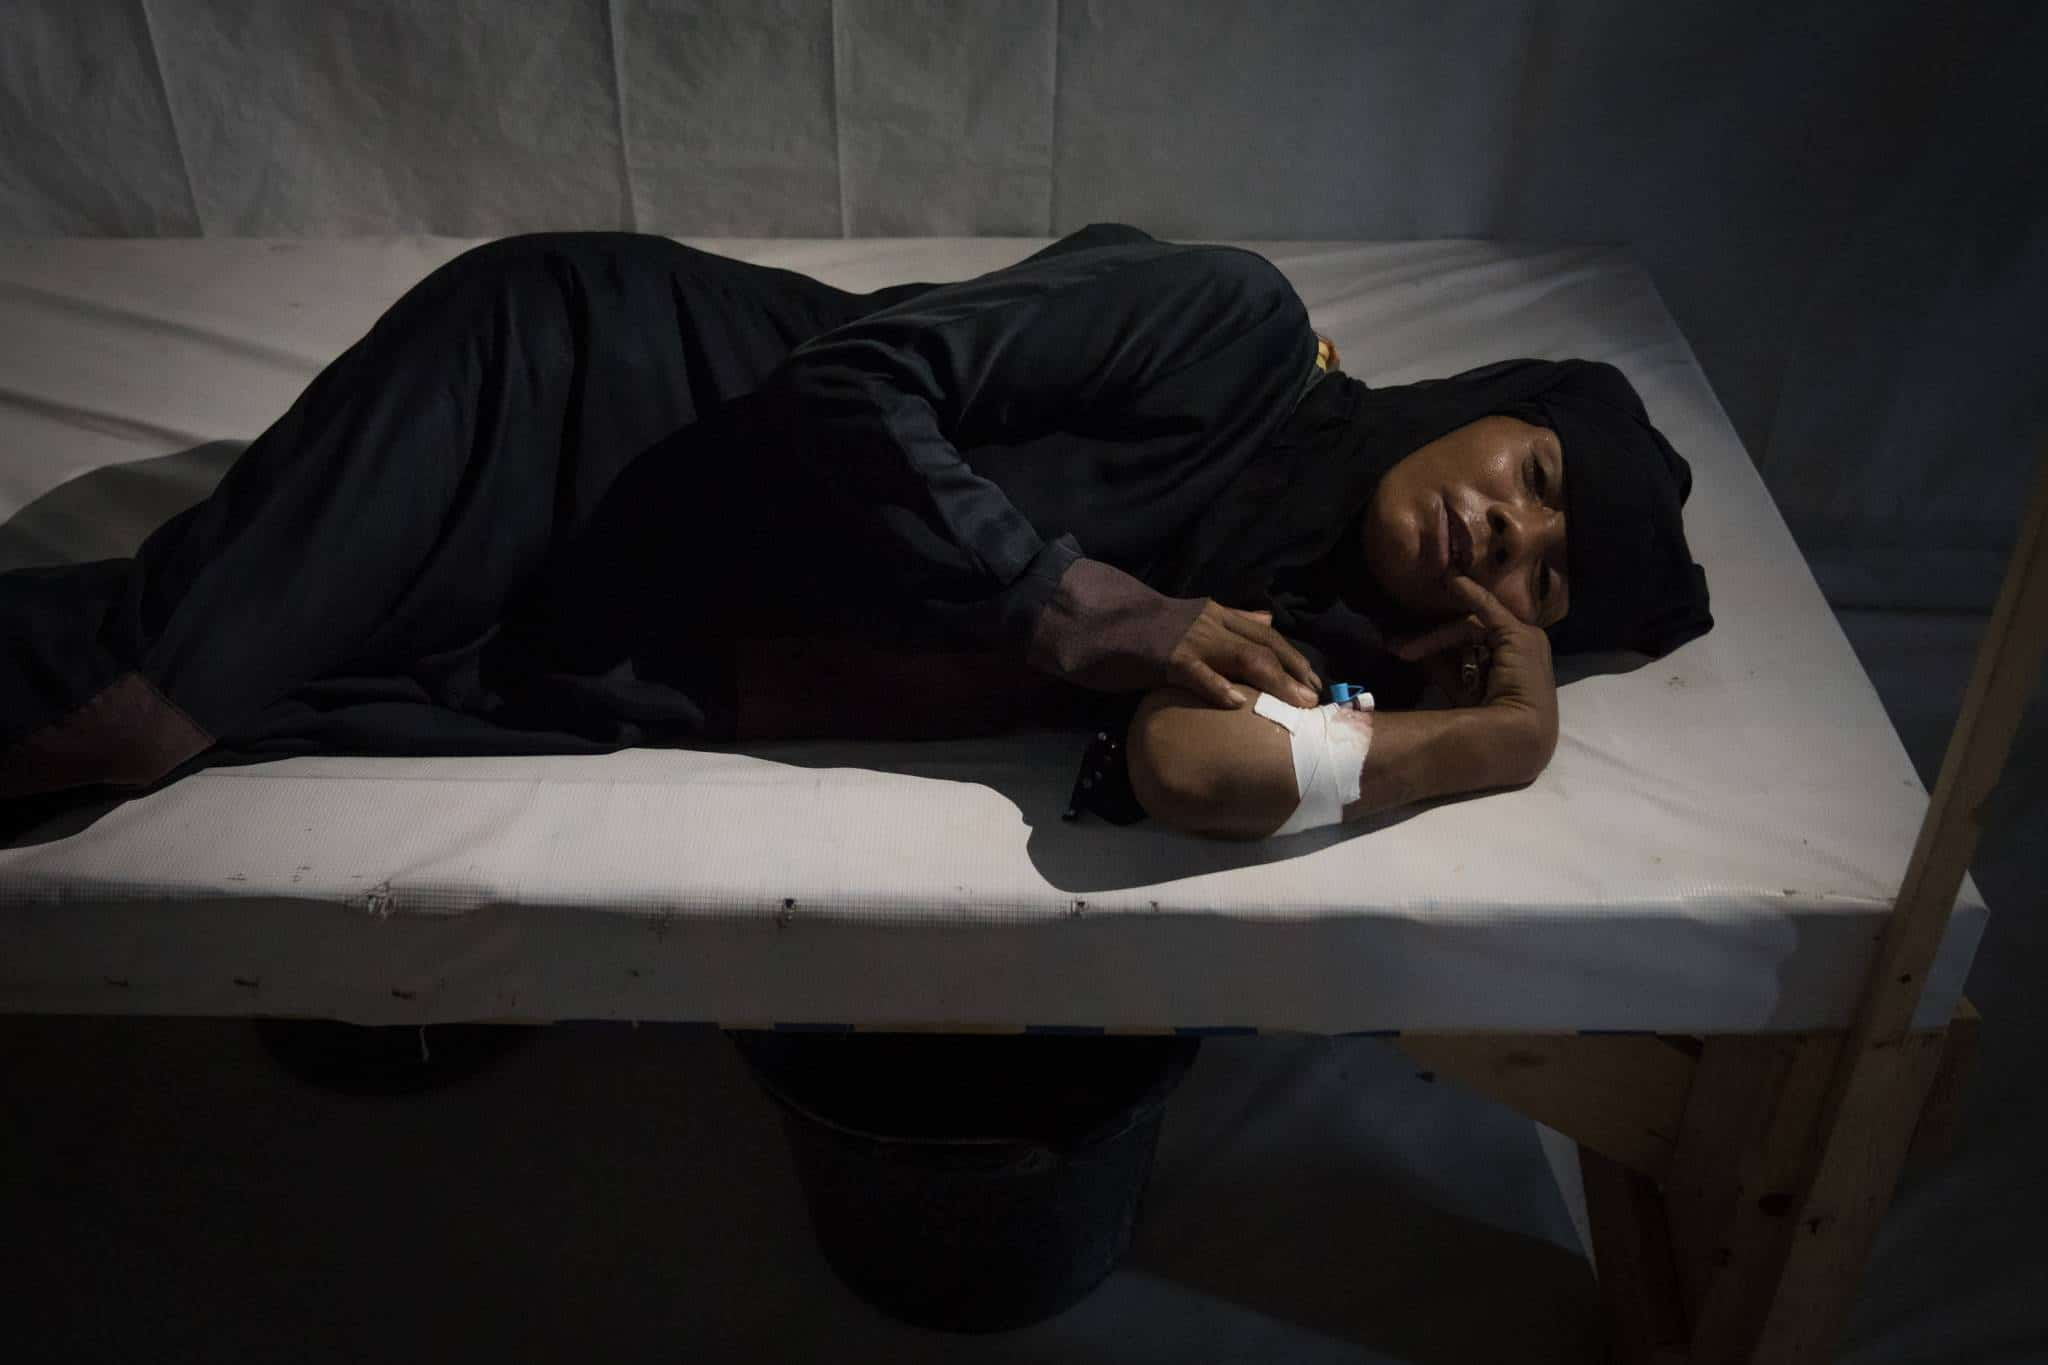 AL THAWRA HOSPITAL, AL HUDAYDAH, YEMEN - 15 APRIL 2017. A suspected cholera patient lies on a wooden bed in a hospital in Al Hudaydah. According to UNICEF figures, as of June 5th 2017, some 70,000 suspected cases of cholera had been reported in the past month alone. That number could quadruple to 300,000 cases by the start of July according to a recent statement by the regional director of UNICEF, Geert Cappelaere. The war is severely hampering access for critical medical supplies.